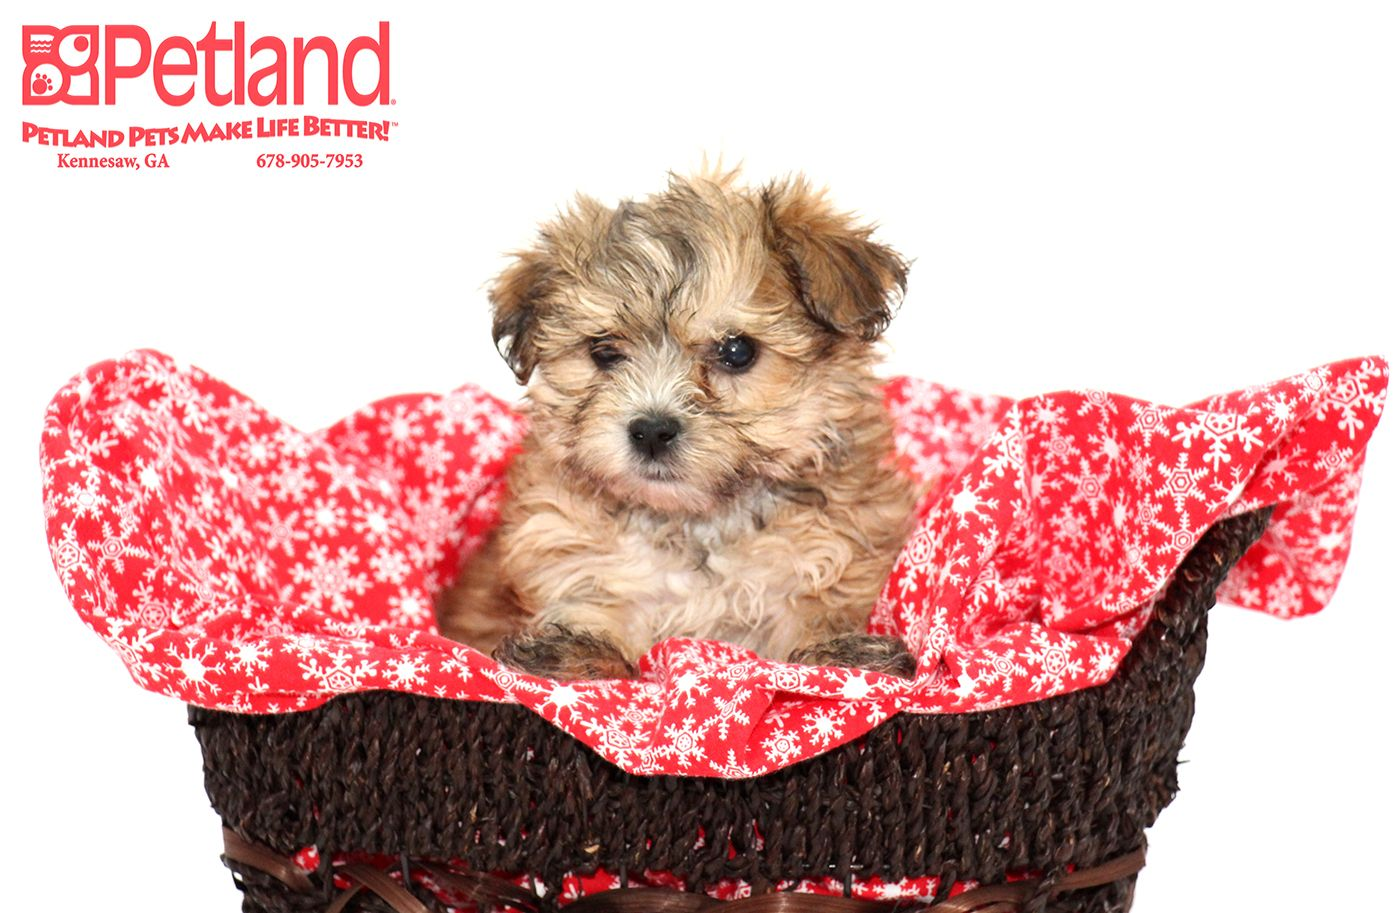 Dogs puppies for sale pets puppies dog adoption